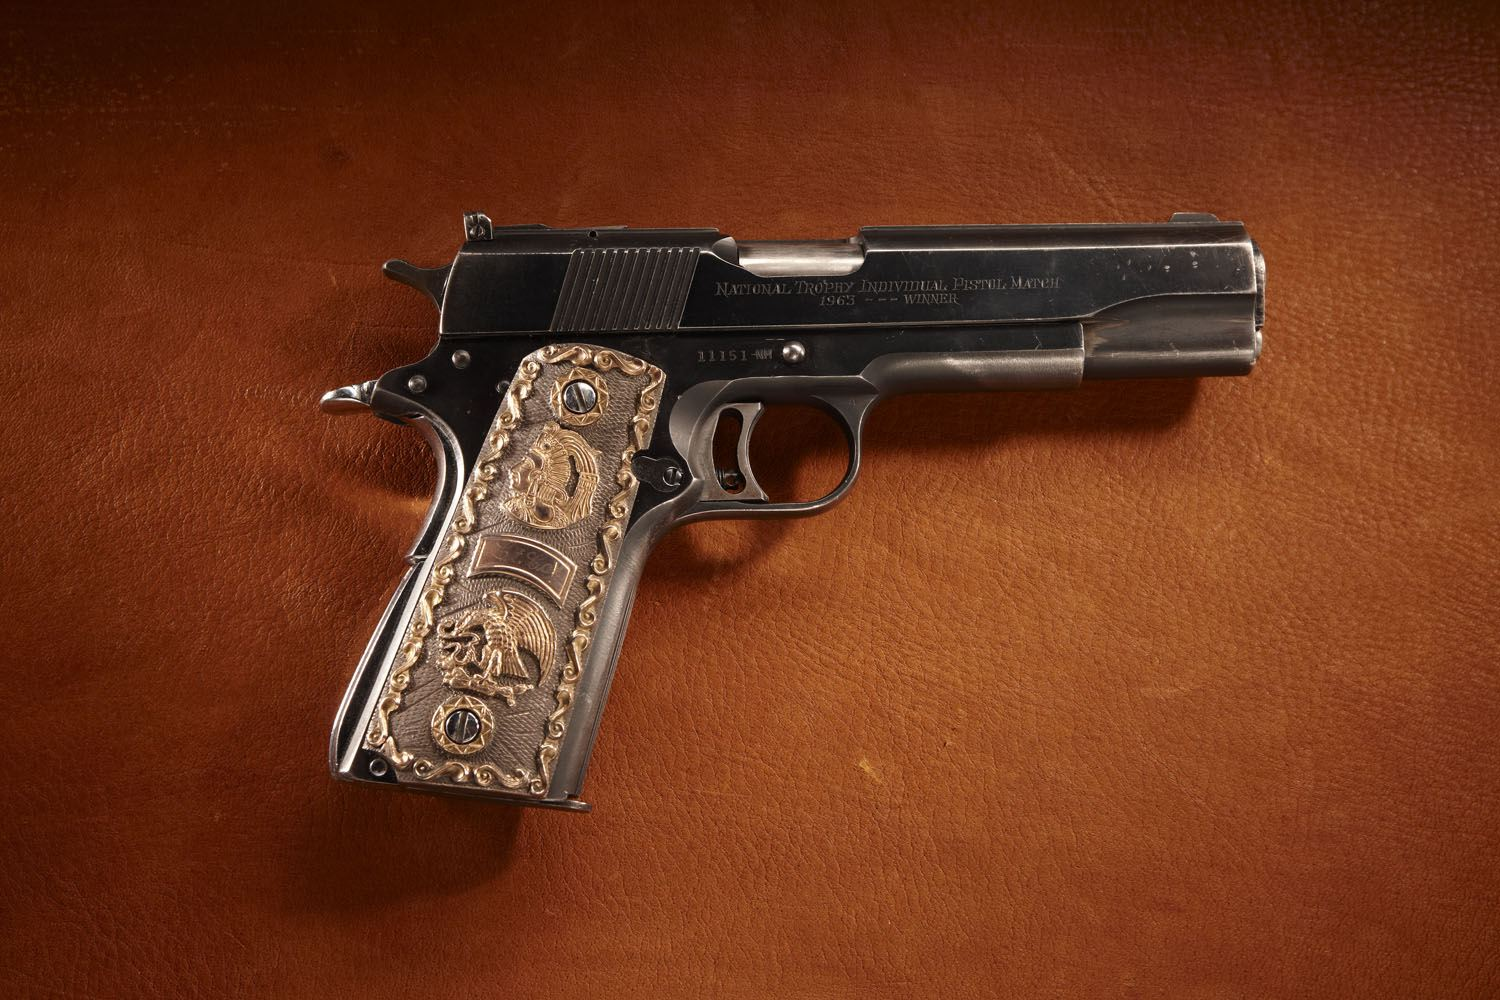 Capt. William McMillan's Colt National Match Pistol